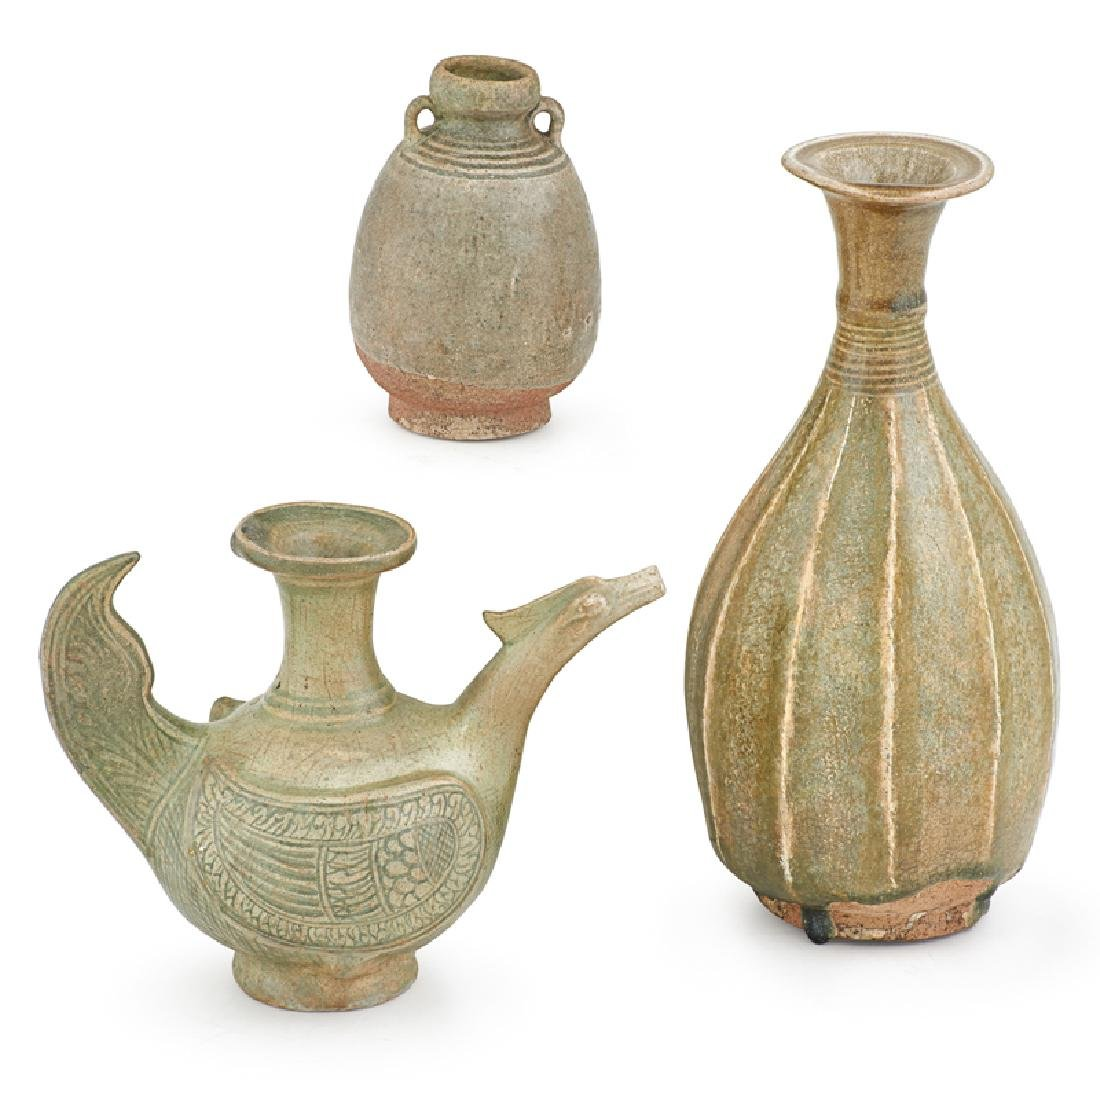 GROUP OF SAWANKHALOK, THAILAND POTTERY